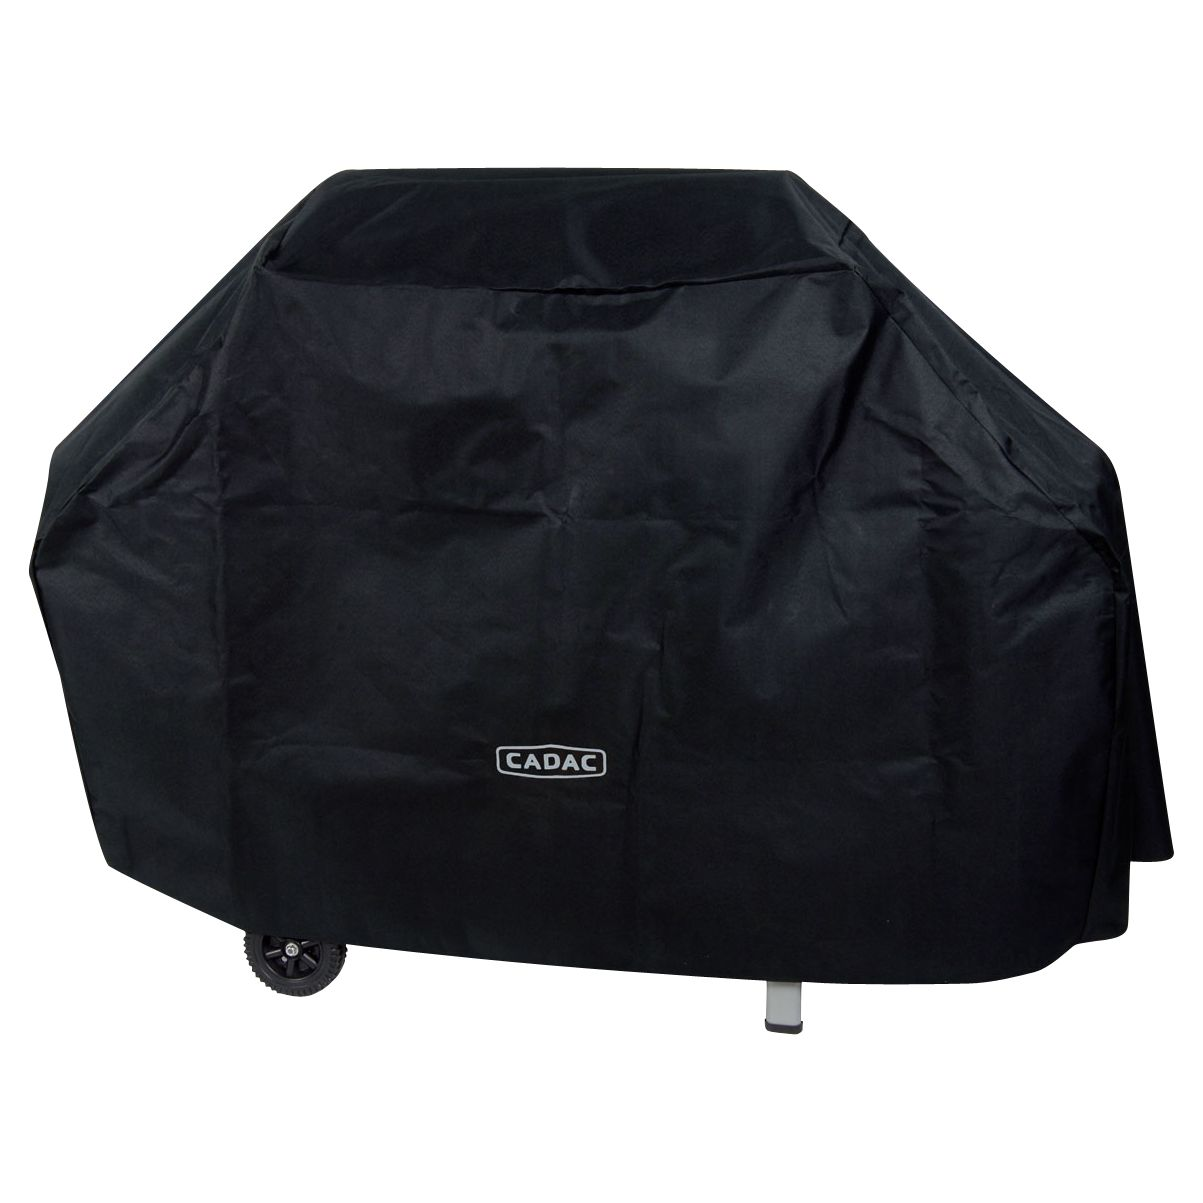 Cadac Cover for 3 Burner BBQ